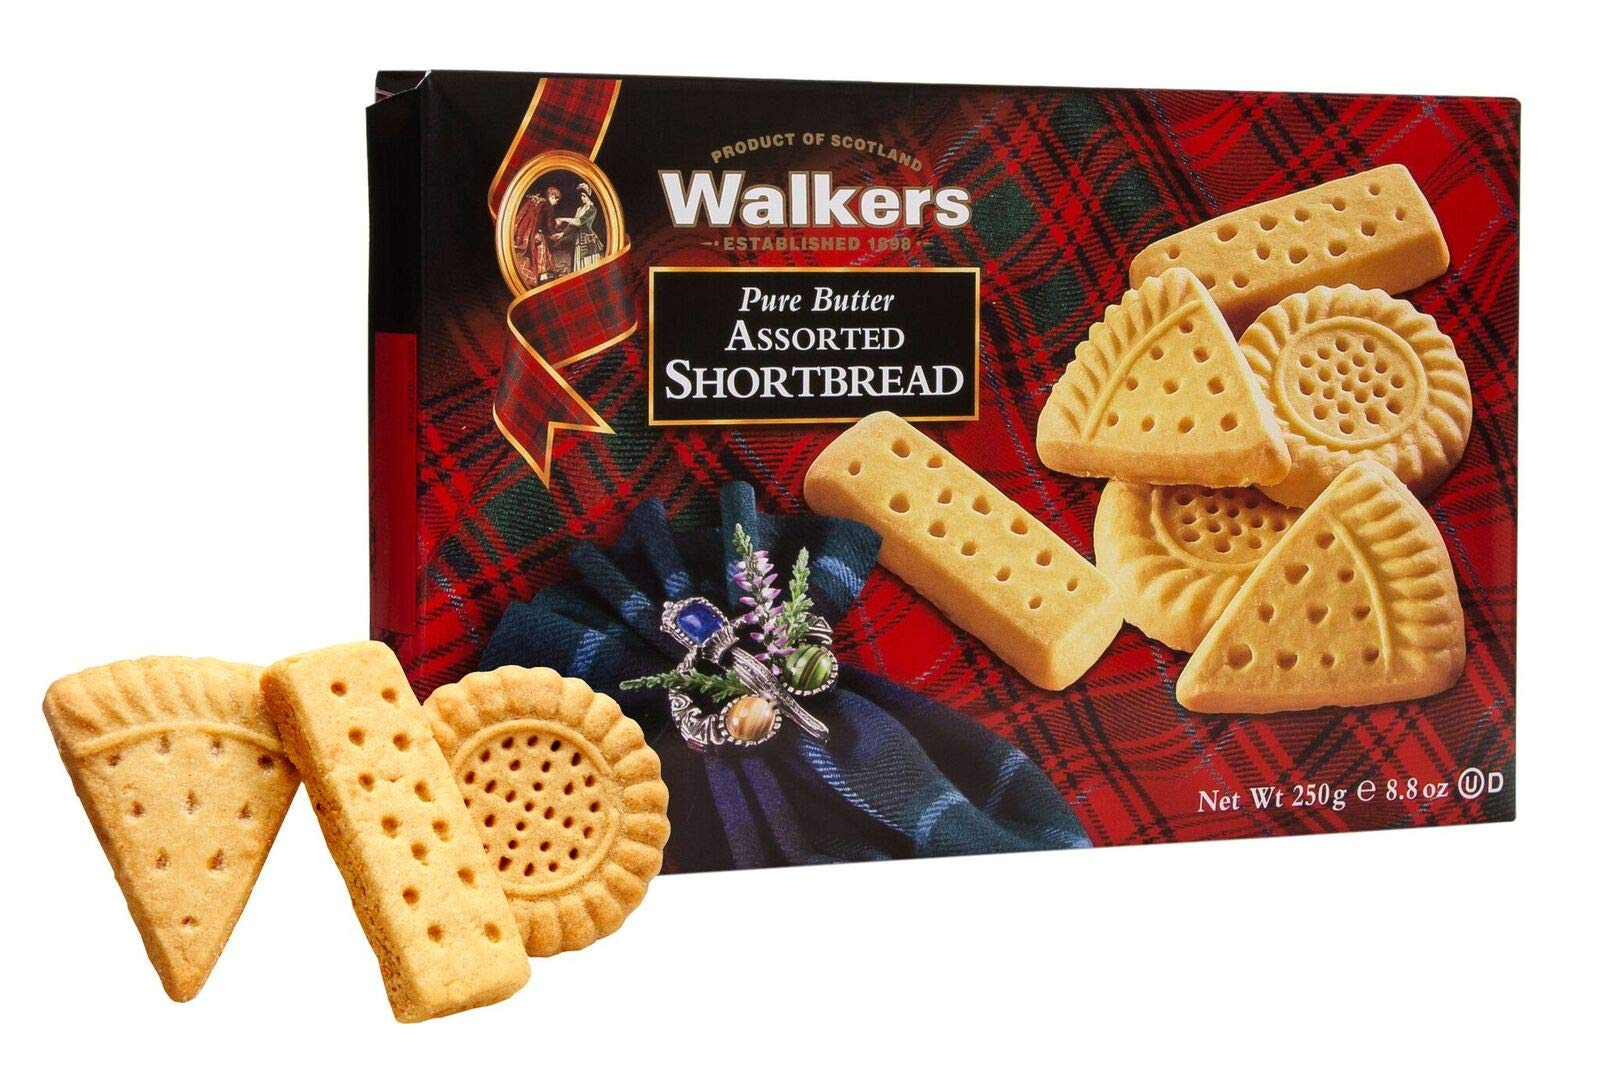 Walkers Shortbread Assorted, Traditional Pure Butter Shortbread Cookies, 8.8 oz. Boxes (6 Boxes) by Walkers Shortbread